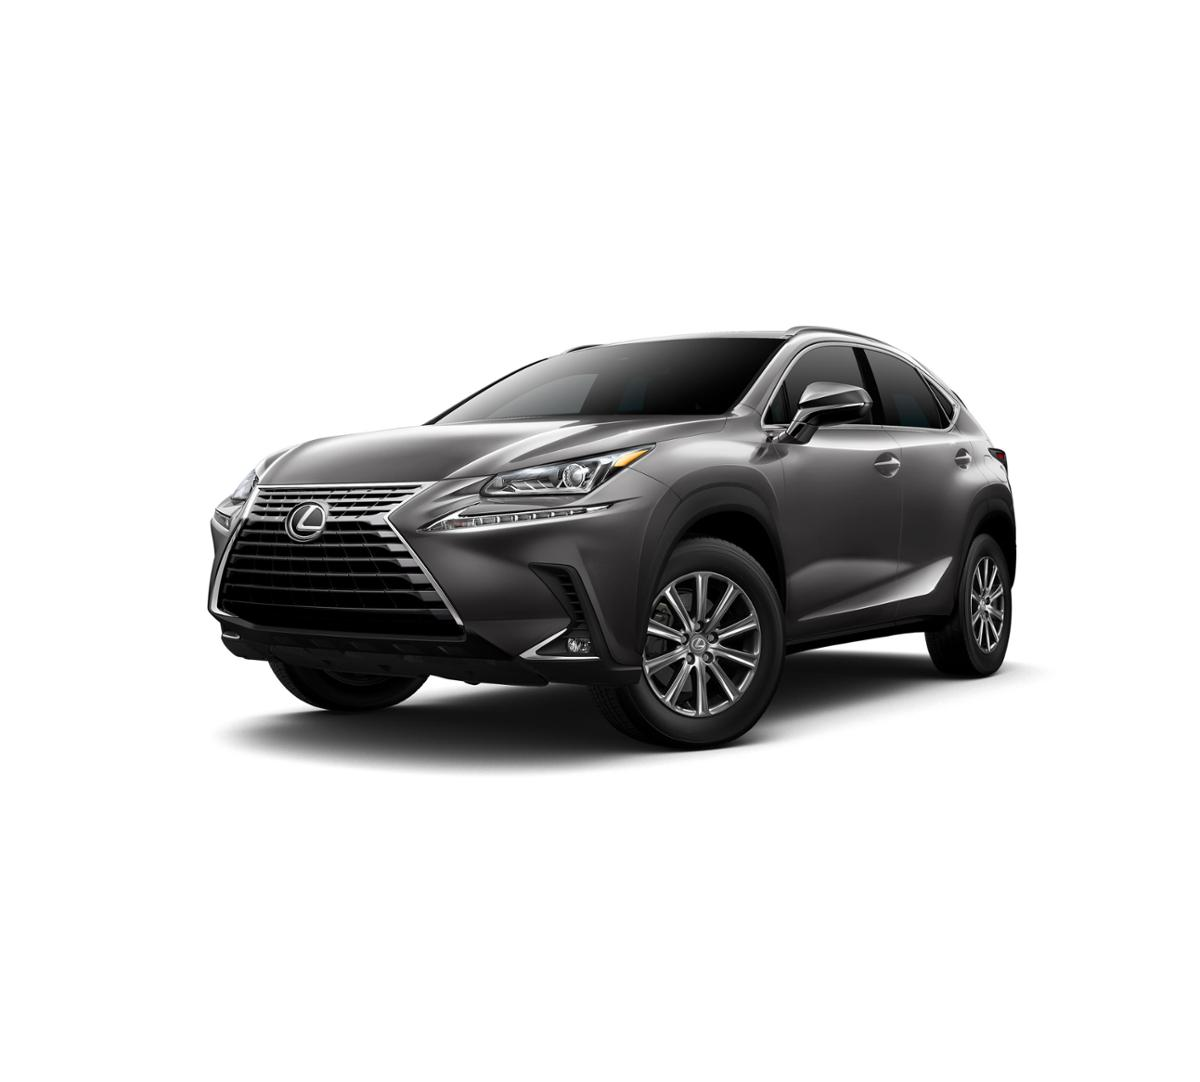 2018 Lexus NX 300 Vehicle Photo in Larchmont, NY 10538